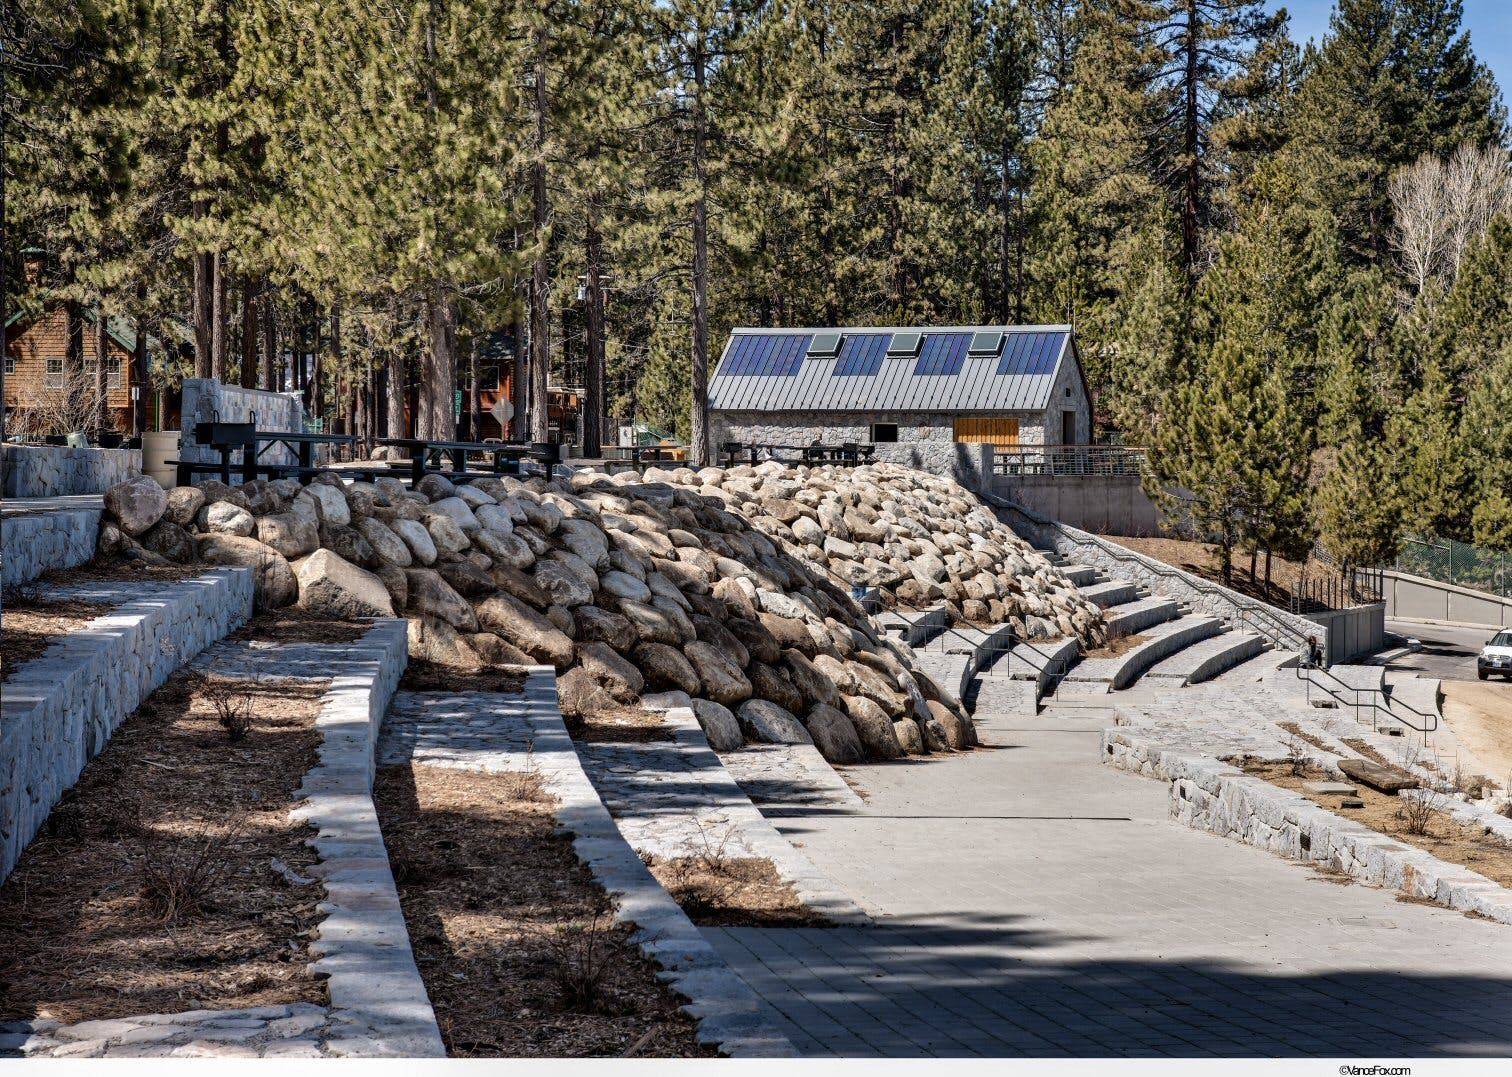 El dorado beach lakeview commons ware associates inc for Lake tahoe architecture firms